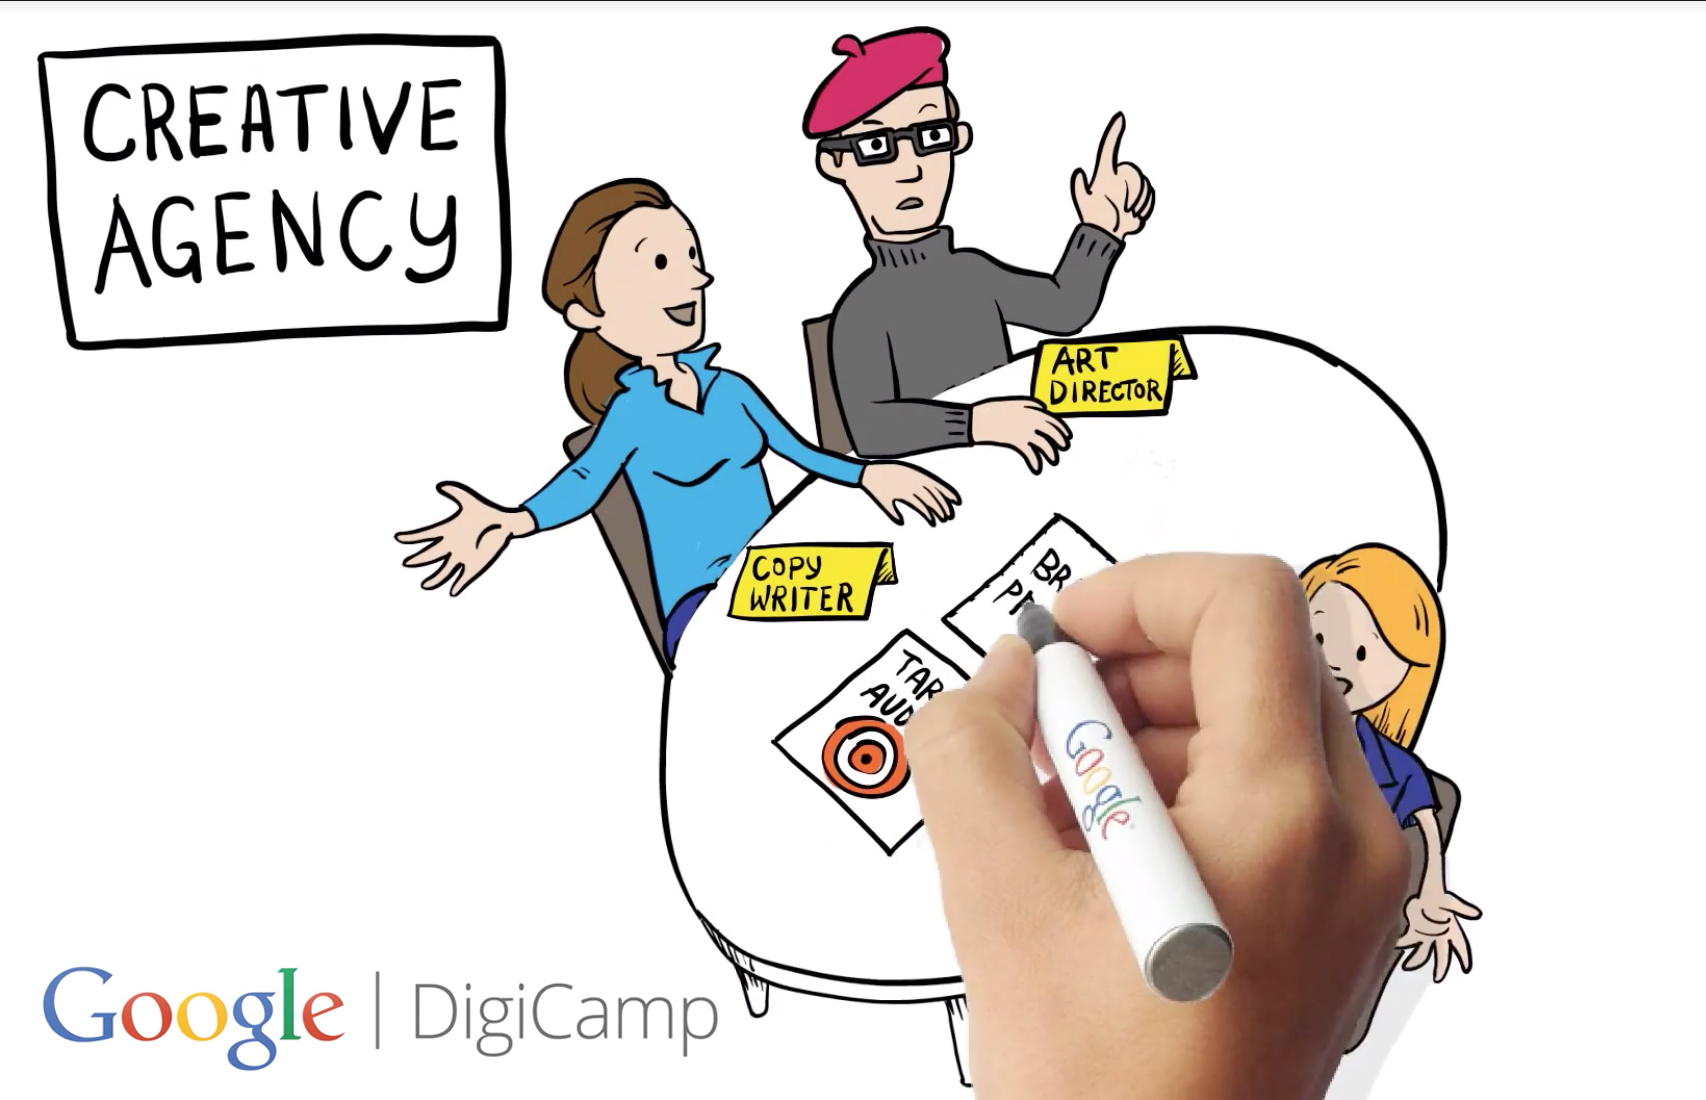 Google Digicamp.jpg